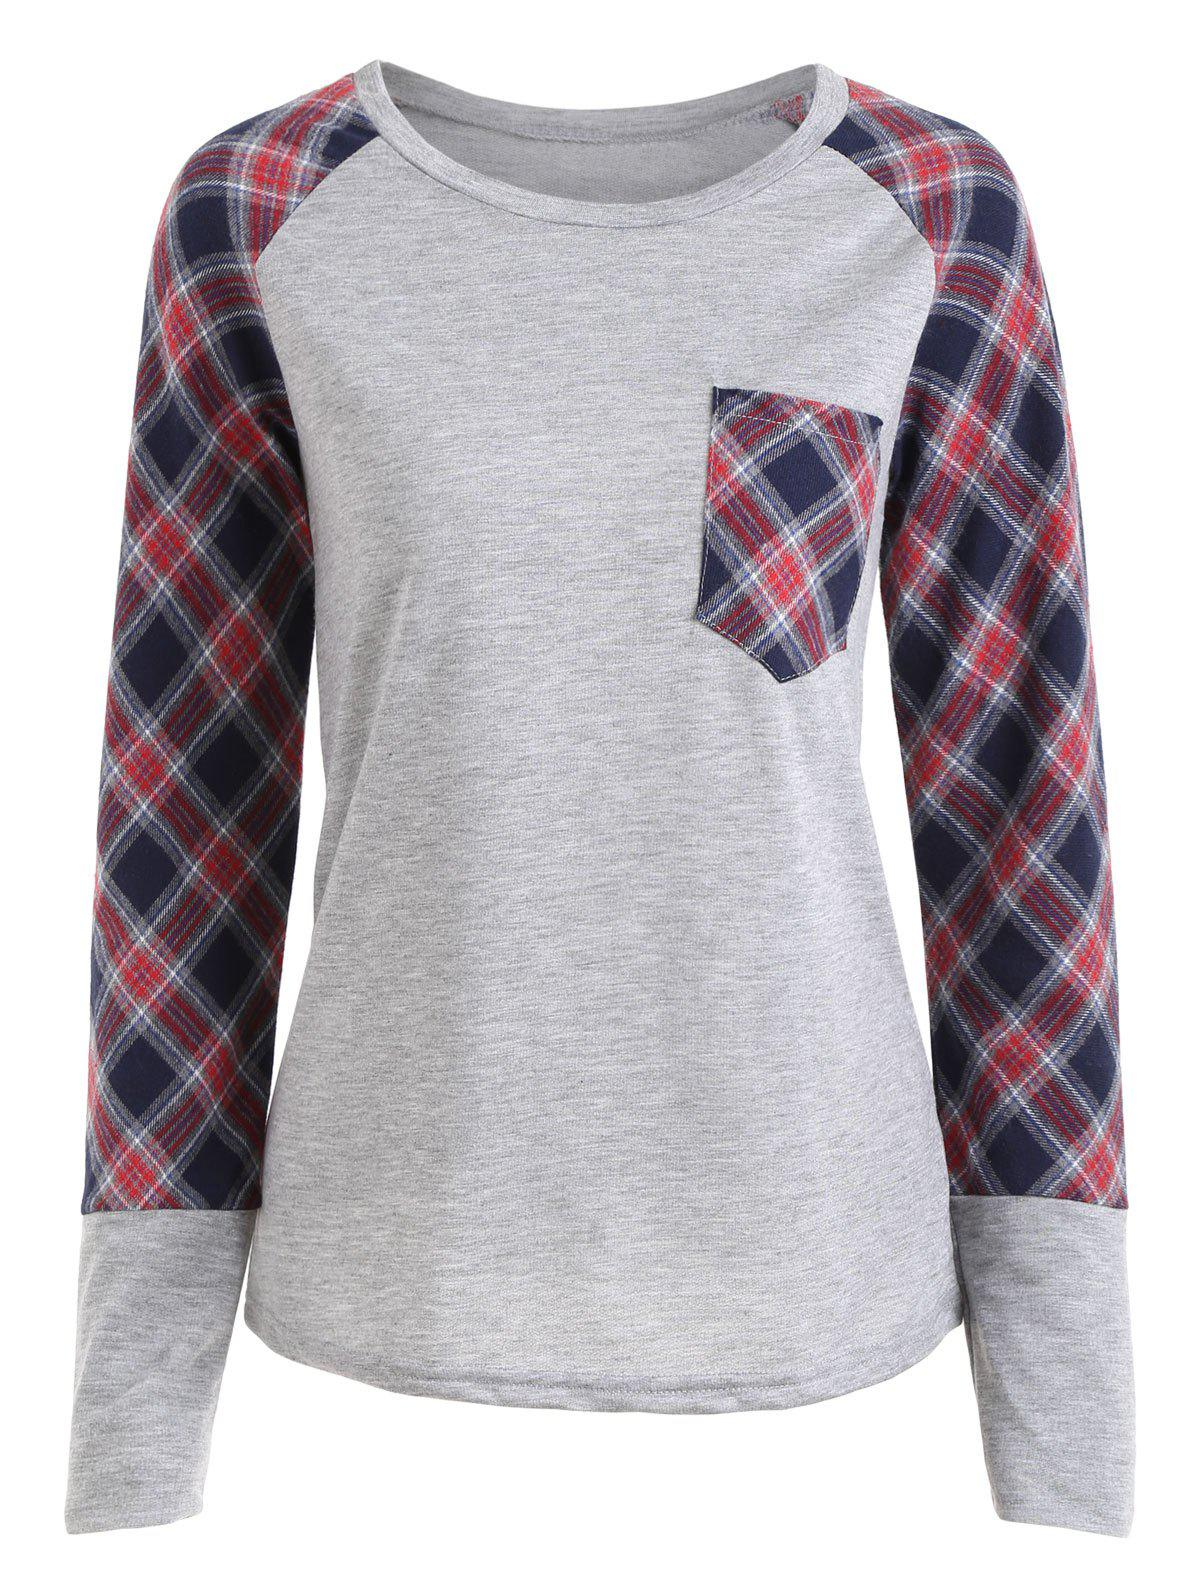 Plaid Raglan Sleeve Pocket Top - GRAY L